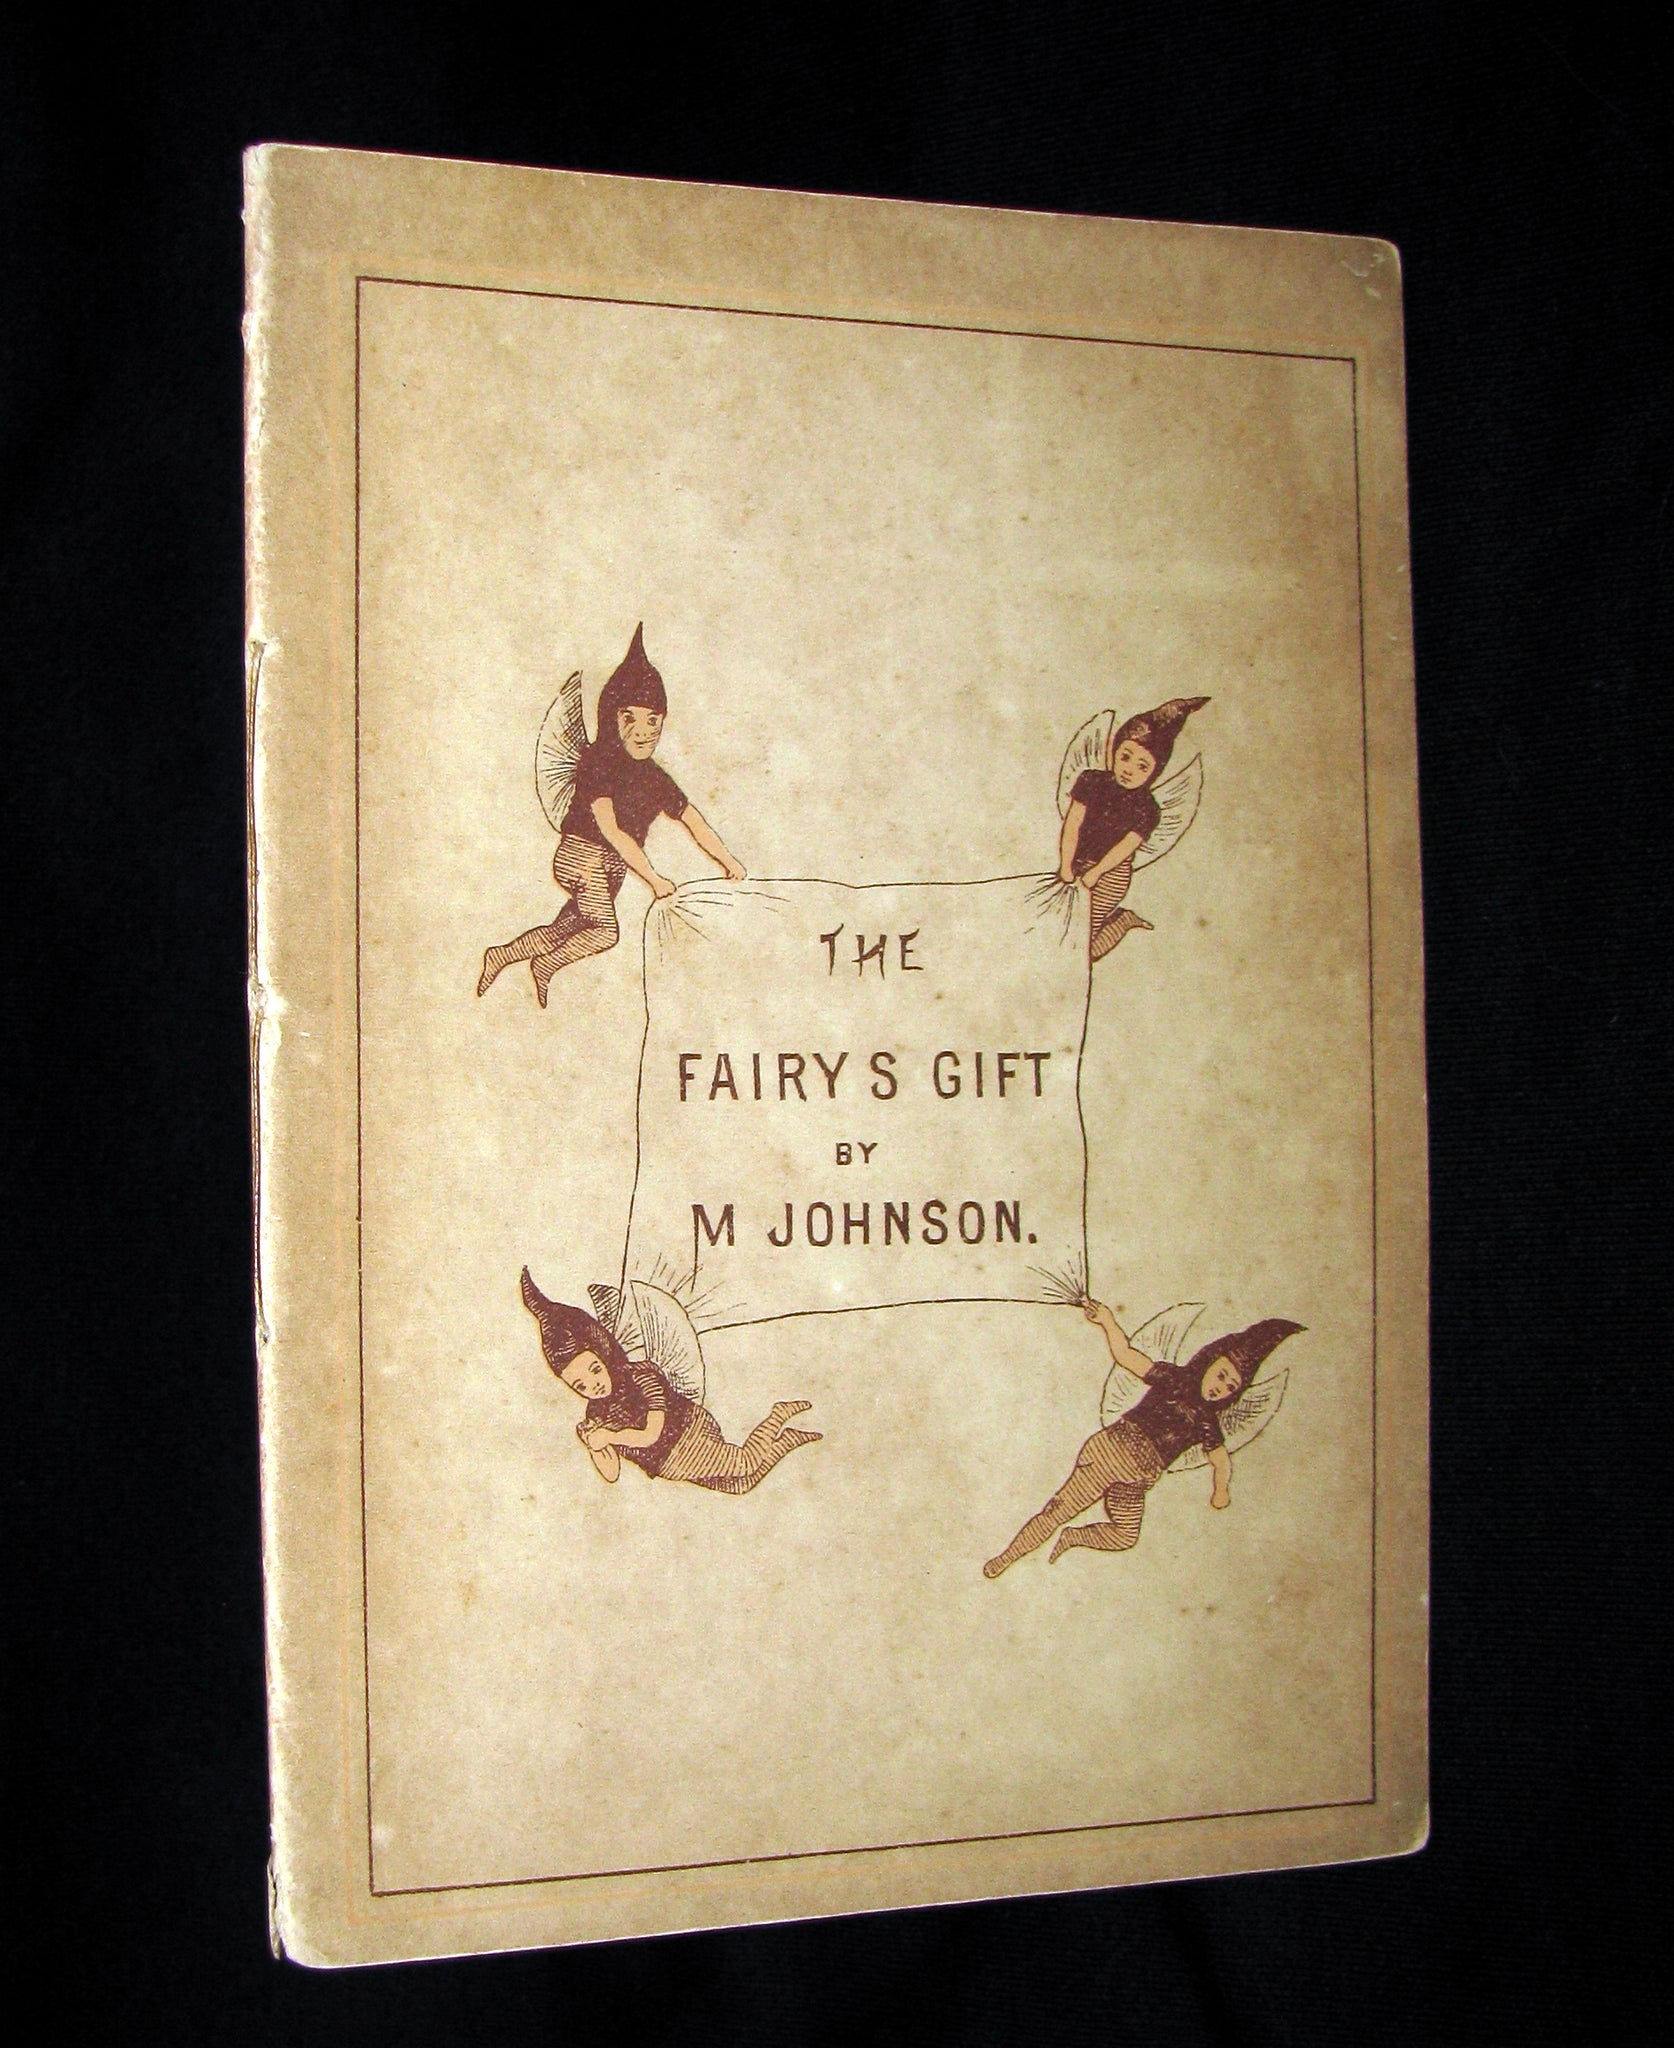 1883 Scarce Victorian Booklet - The Fairy's Gift by M. Johnson (Johnston) A Knitting Fairy Tale